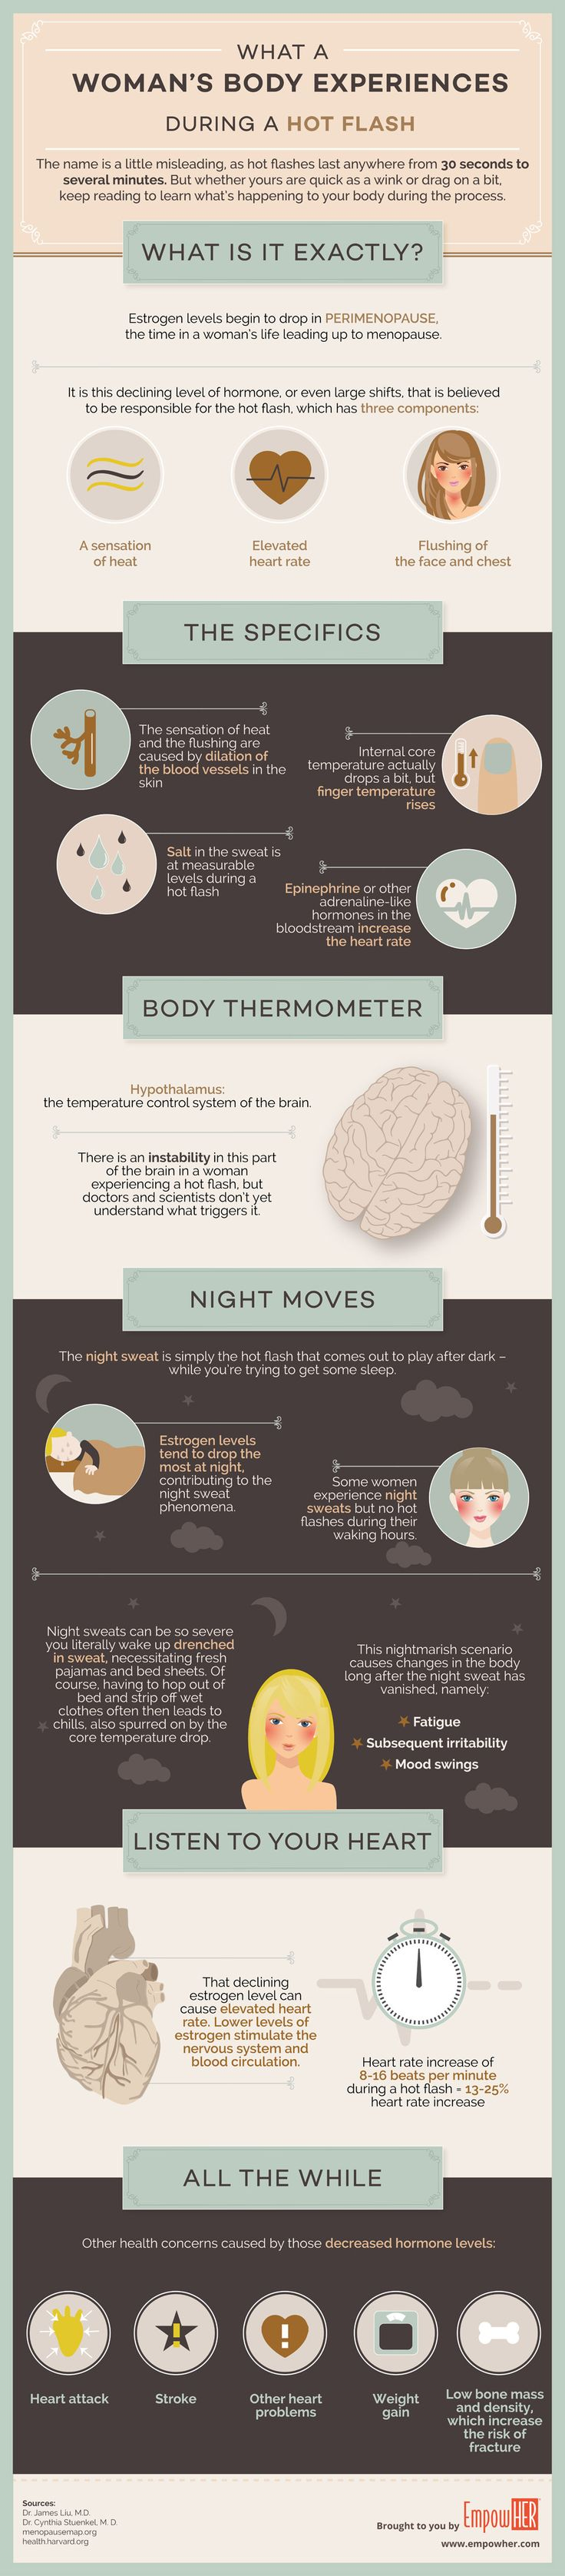 What does a woman's body experience during a hot flash? Check out this infographic to learn more!